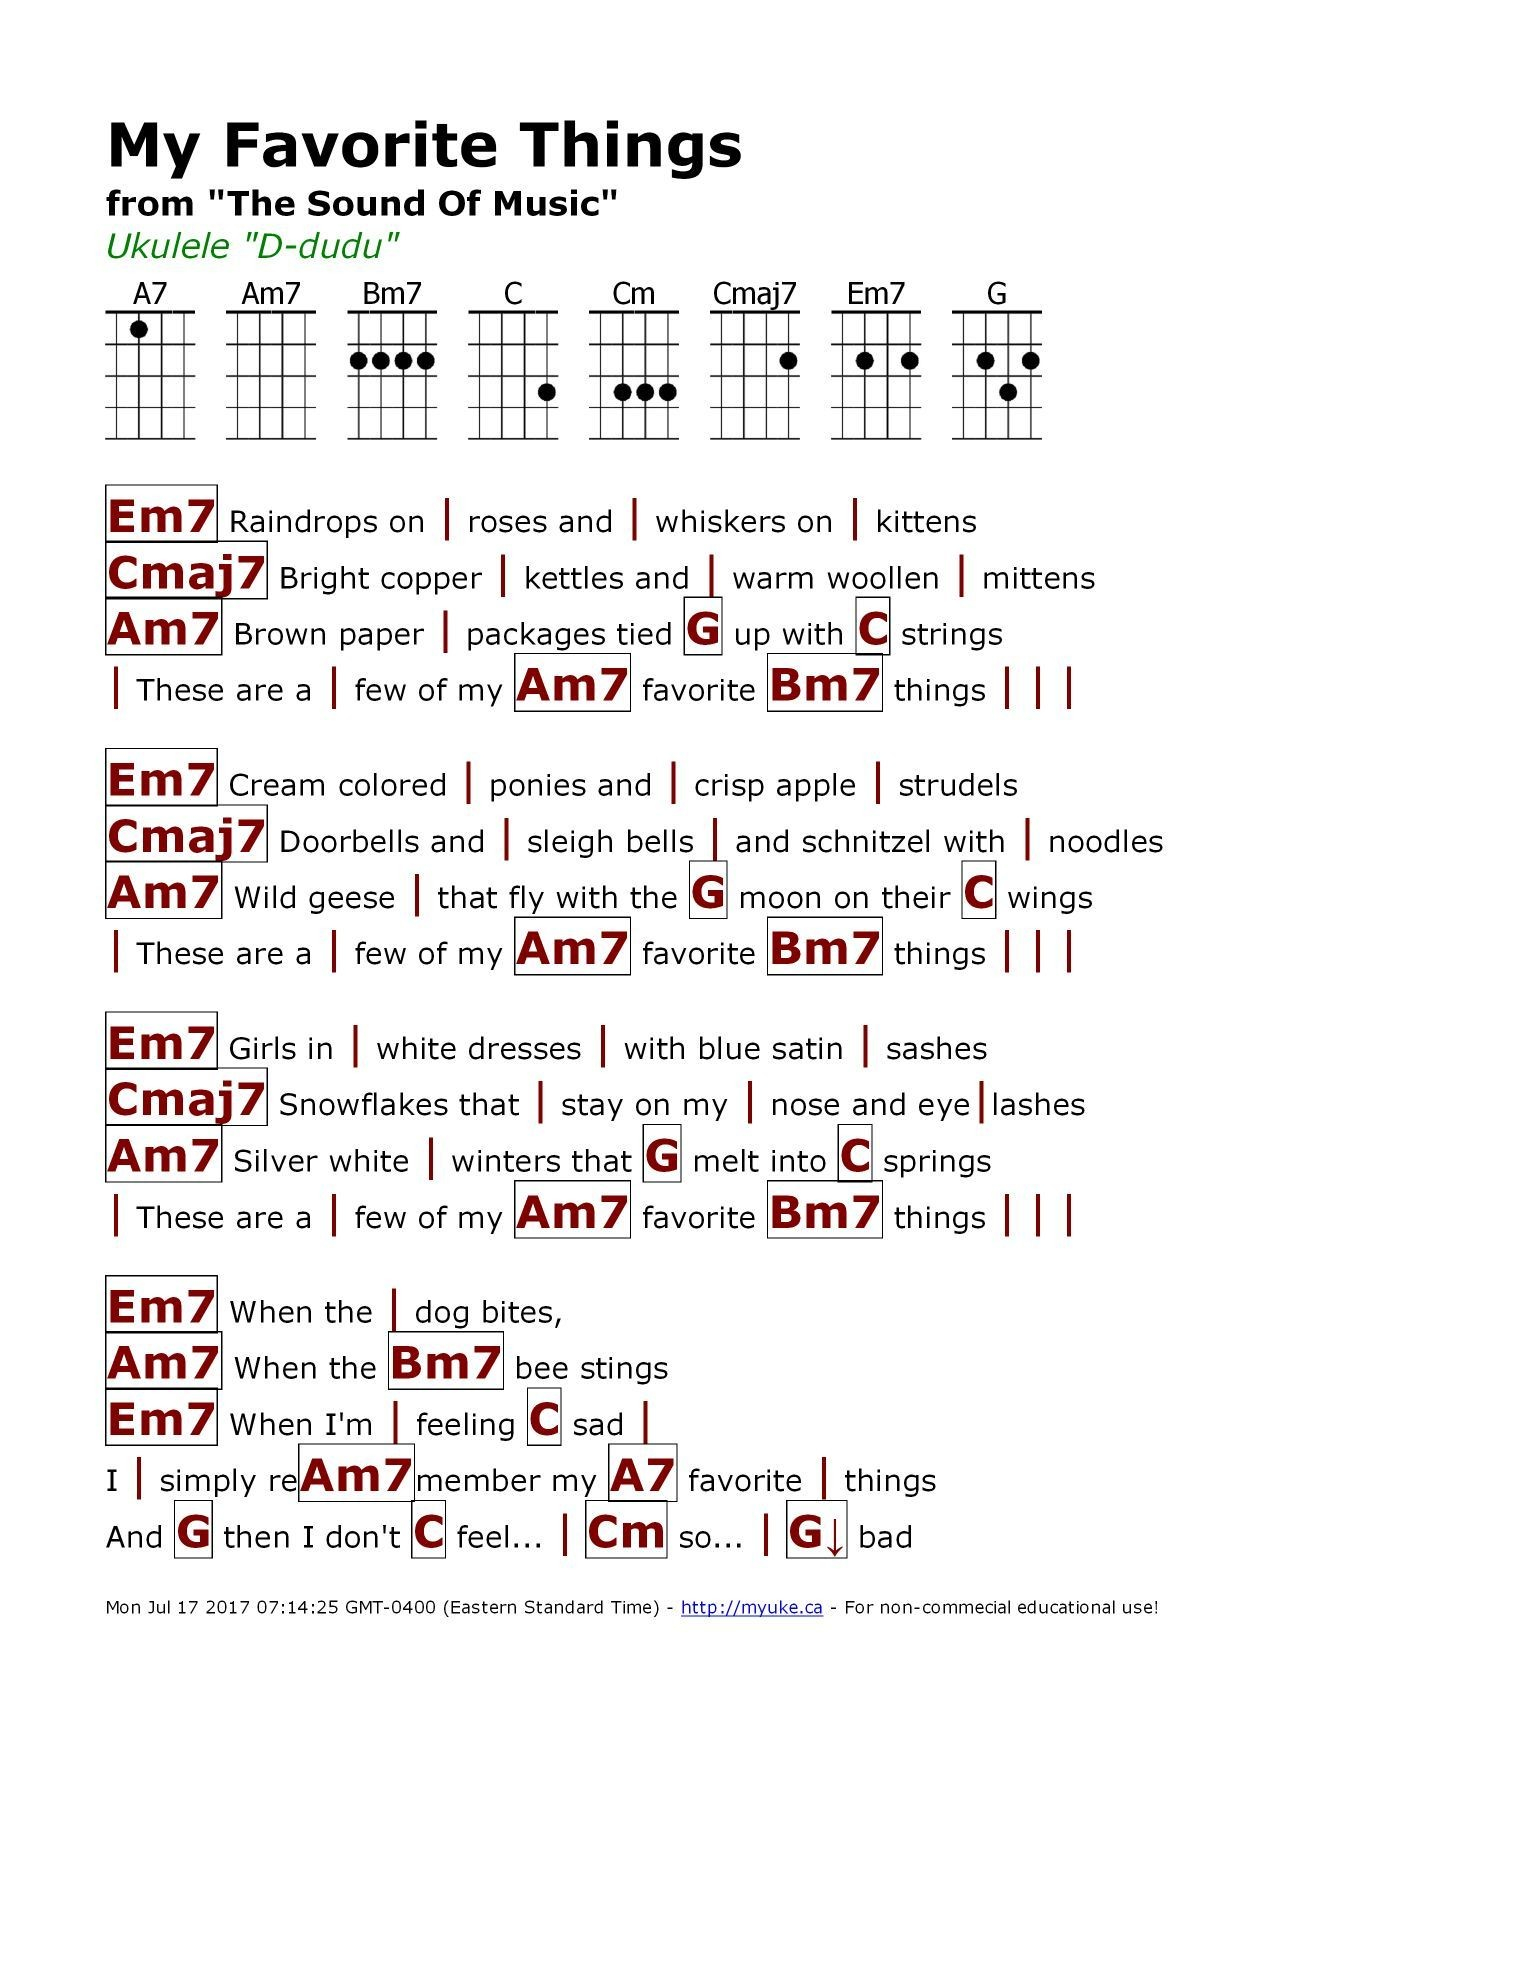 The Weight Chords My Favorite Things Chart Chord Chart With Sound Kiwi Ukulele Chord